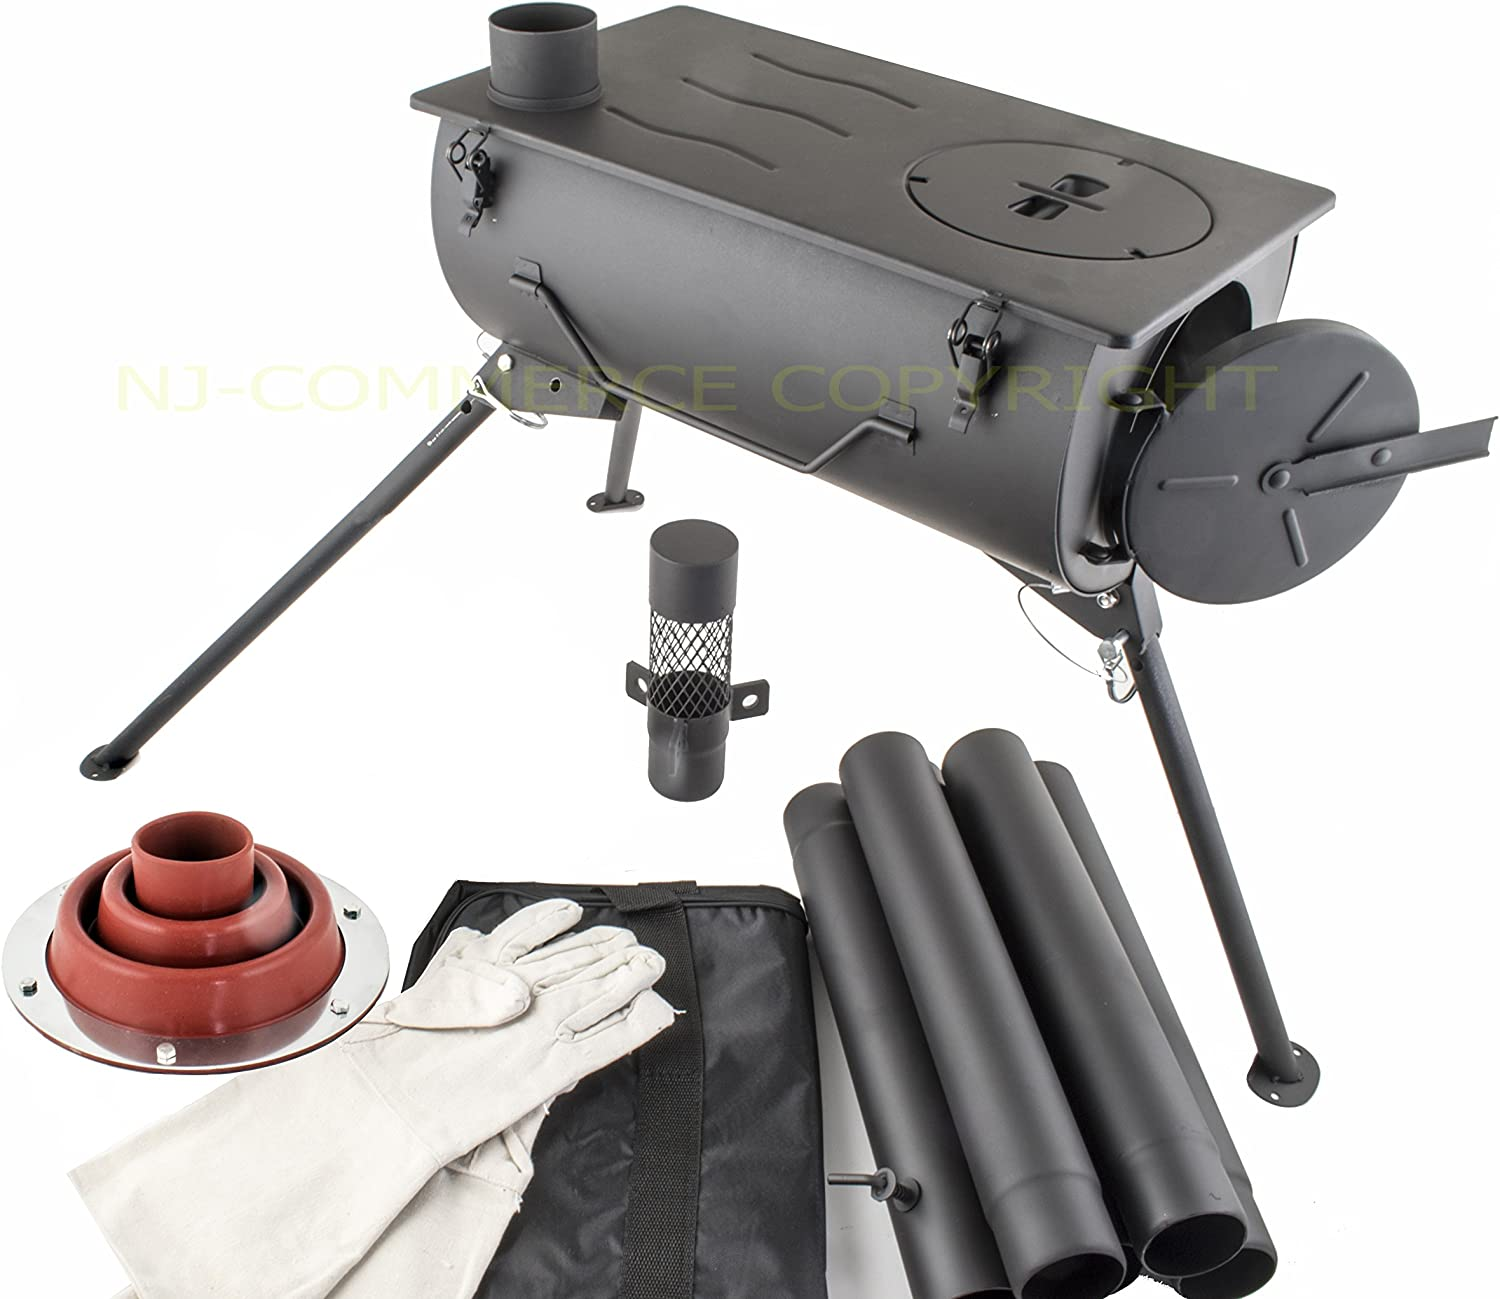 NJ Comfort Portable Wood Burning Stove Camping Cooker with Carry Bag and Flashing Kit